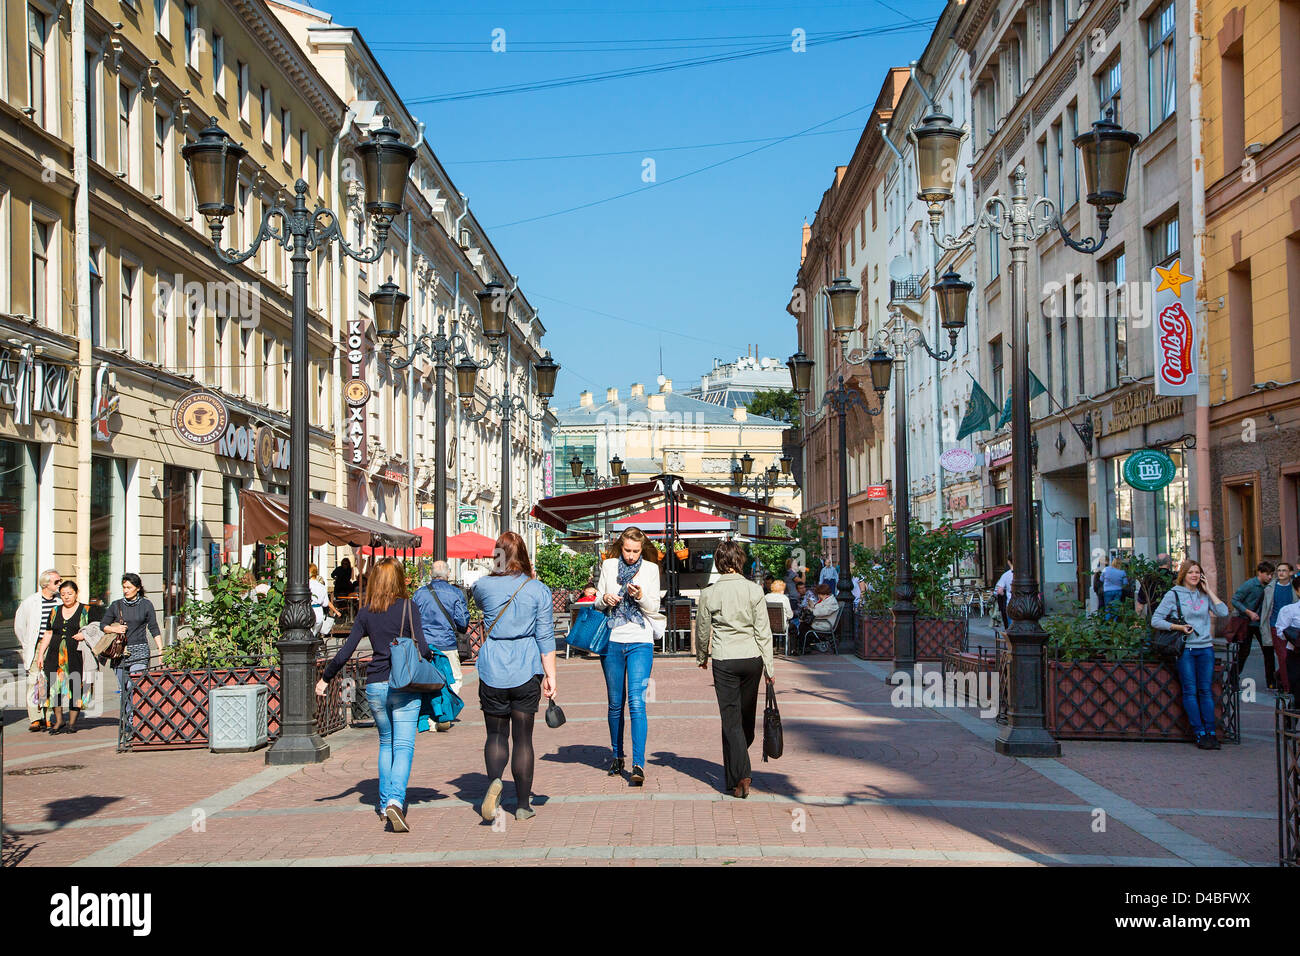 Pedestrian Street In St. Petersburg - Stock Image